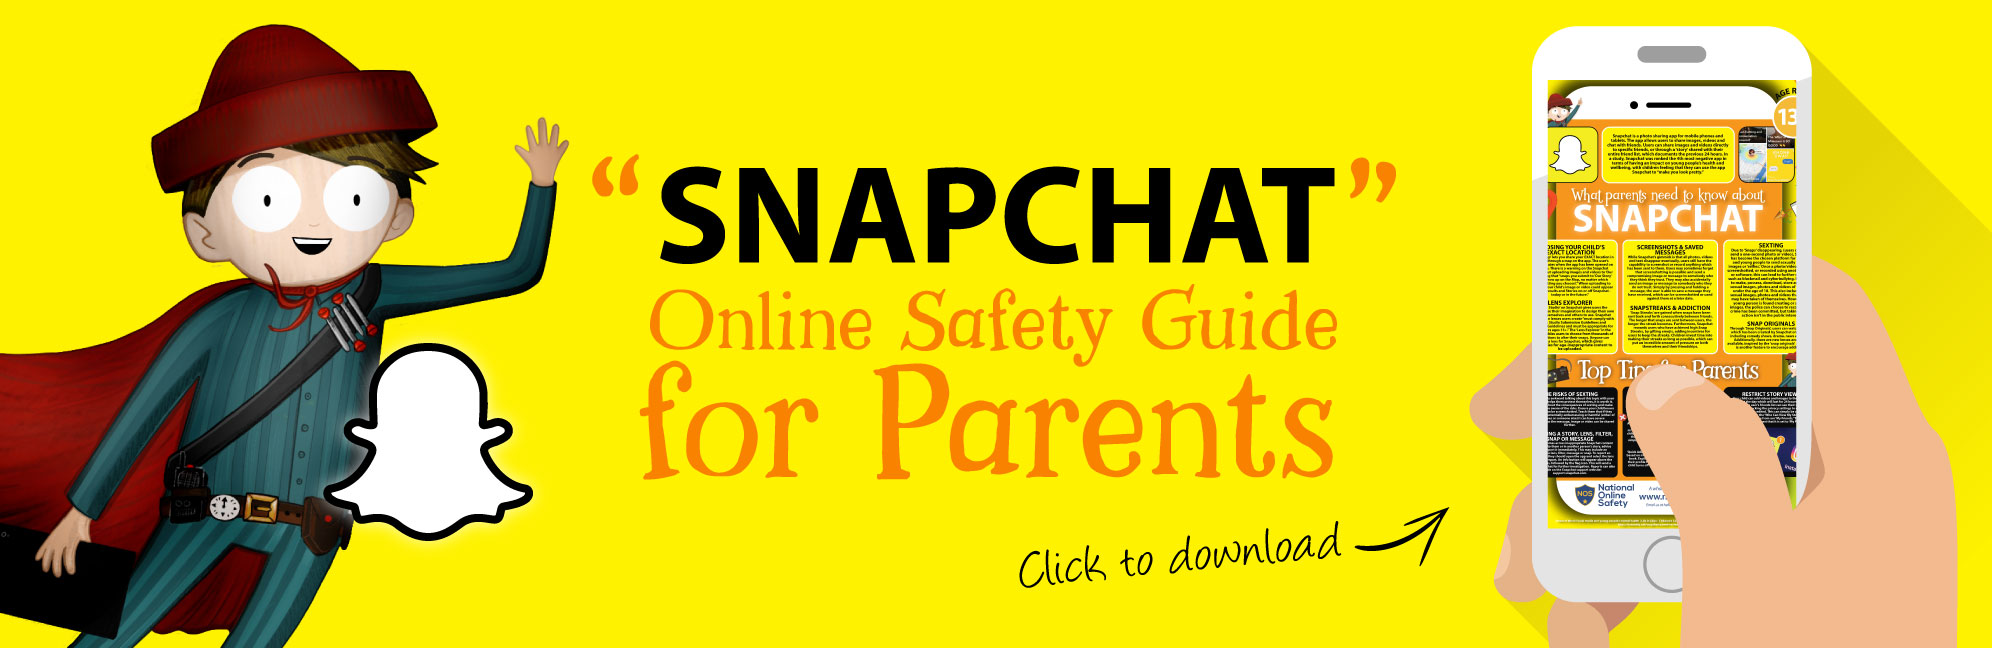 Snapchat-Online-Safety-Parents-Guide-Web-Image-121118-V1